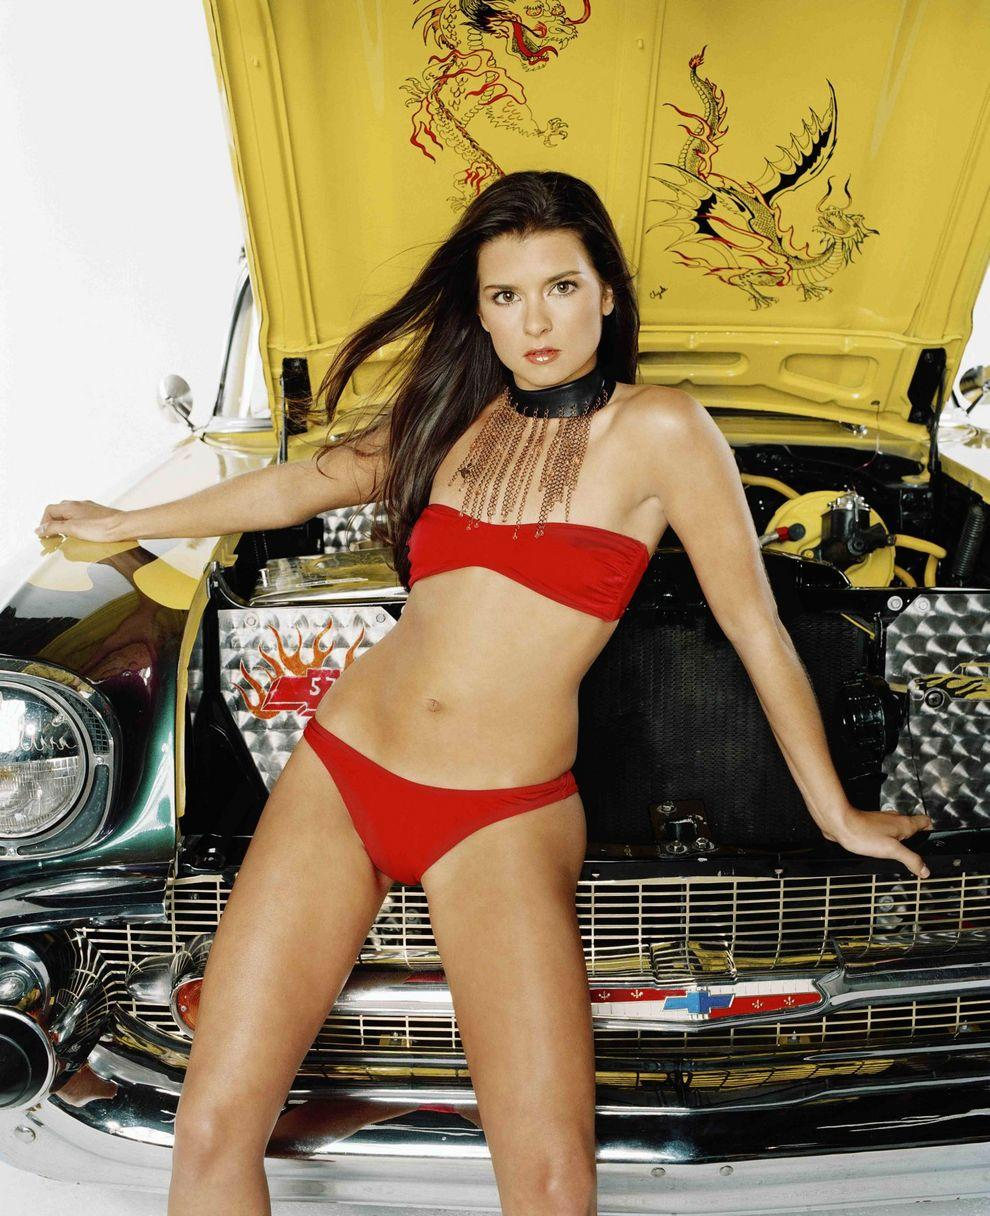 Danica patrick showing her boobs — img 7